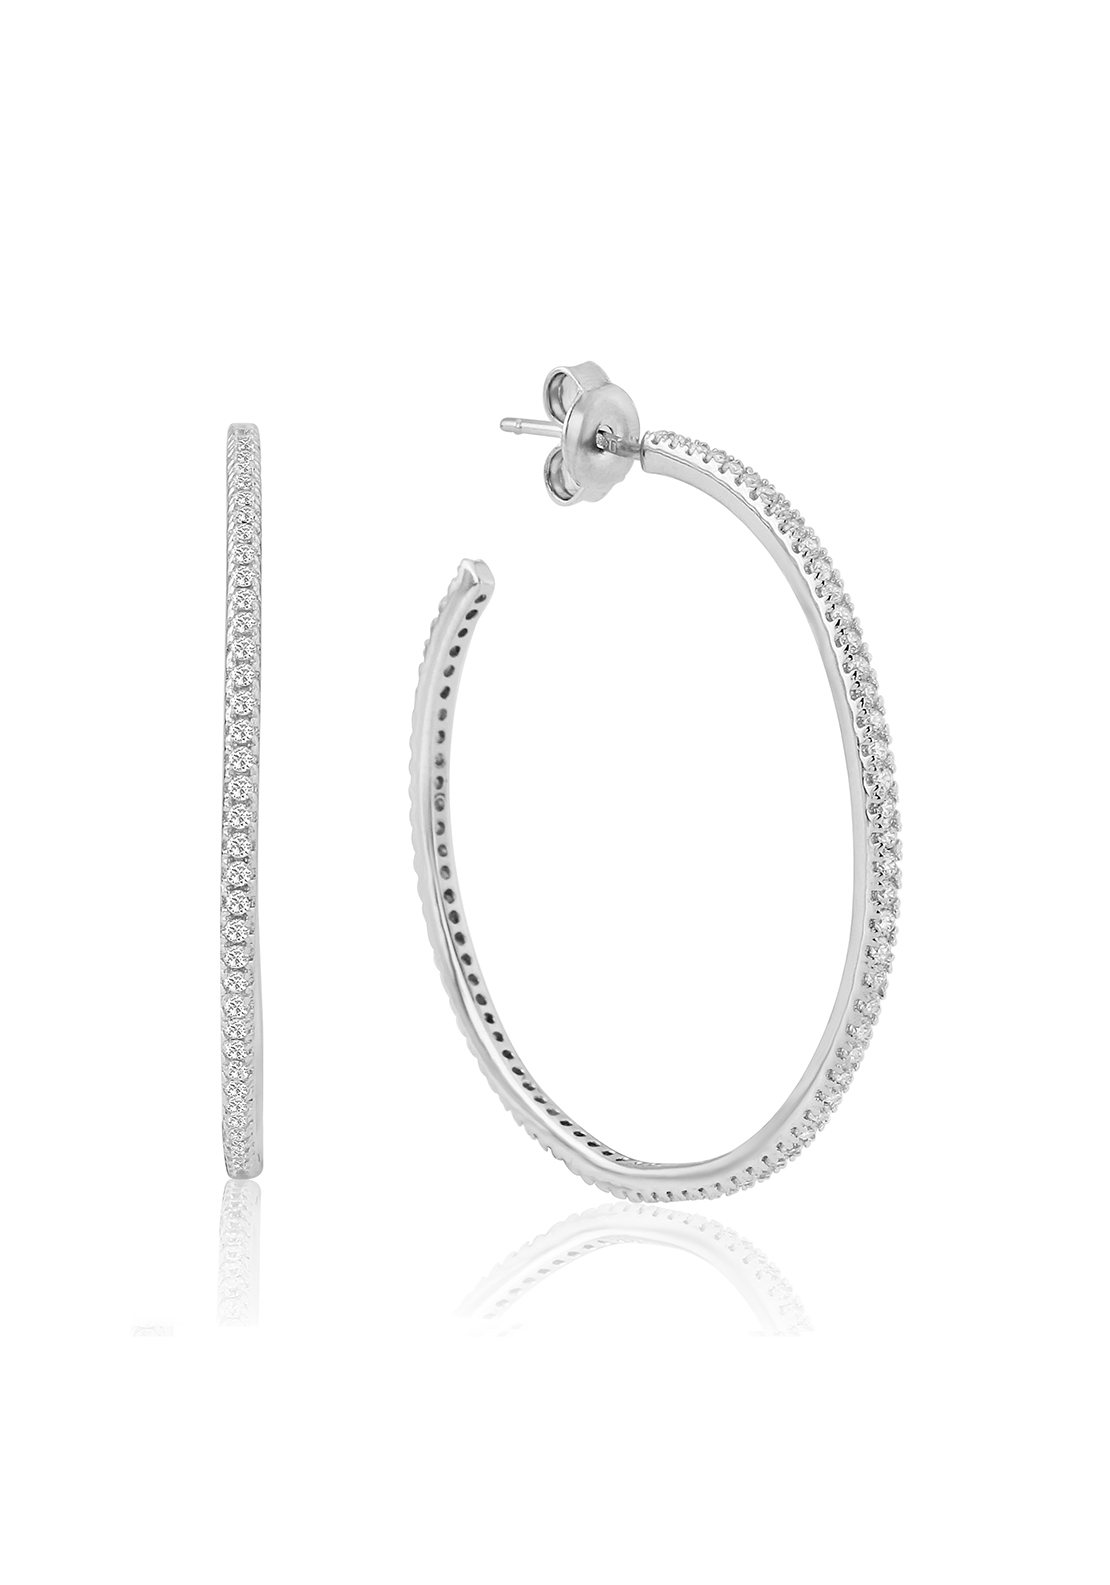 Waterford Crystal Pave Studded Hoop Earrings, Silver